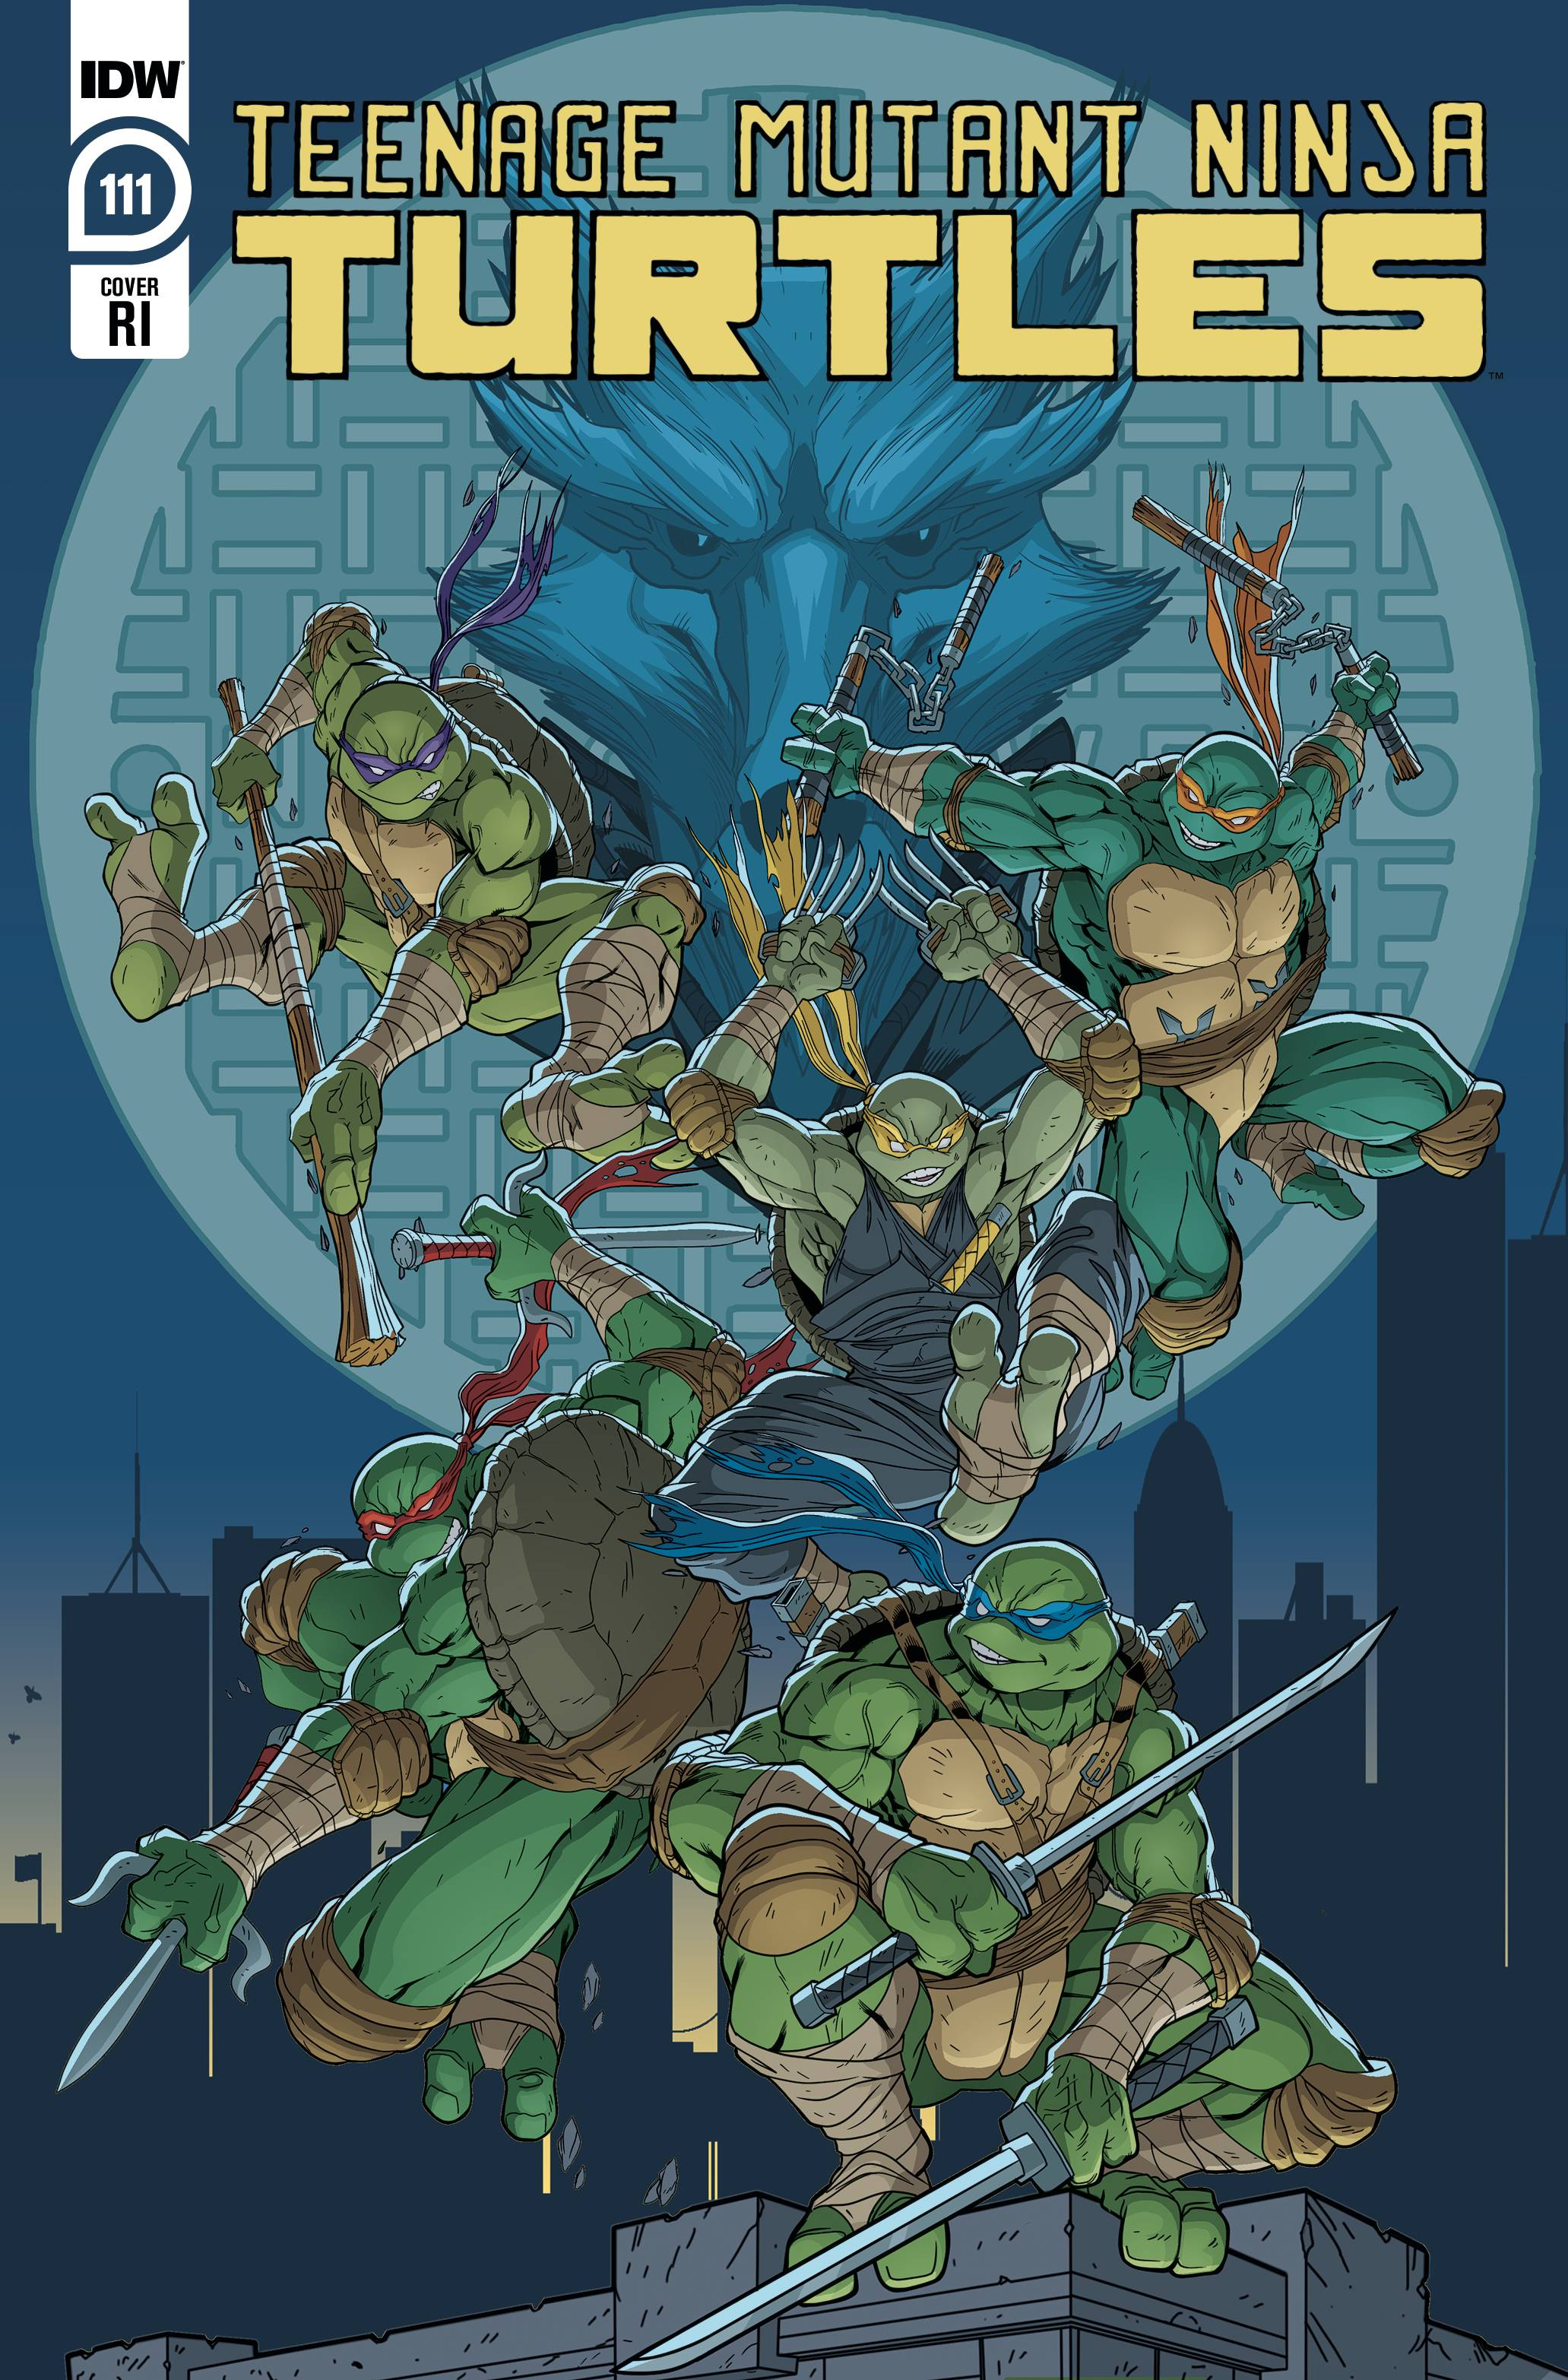 TMNT ONGOING #111 10 COPY INCV LUBERA